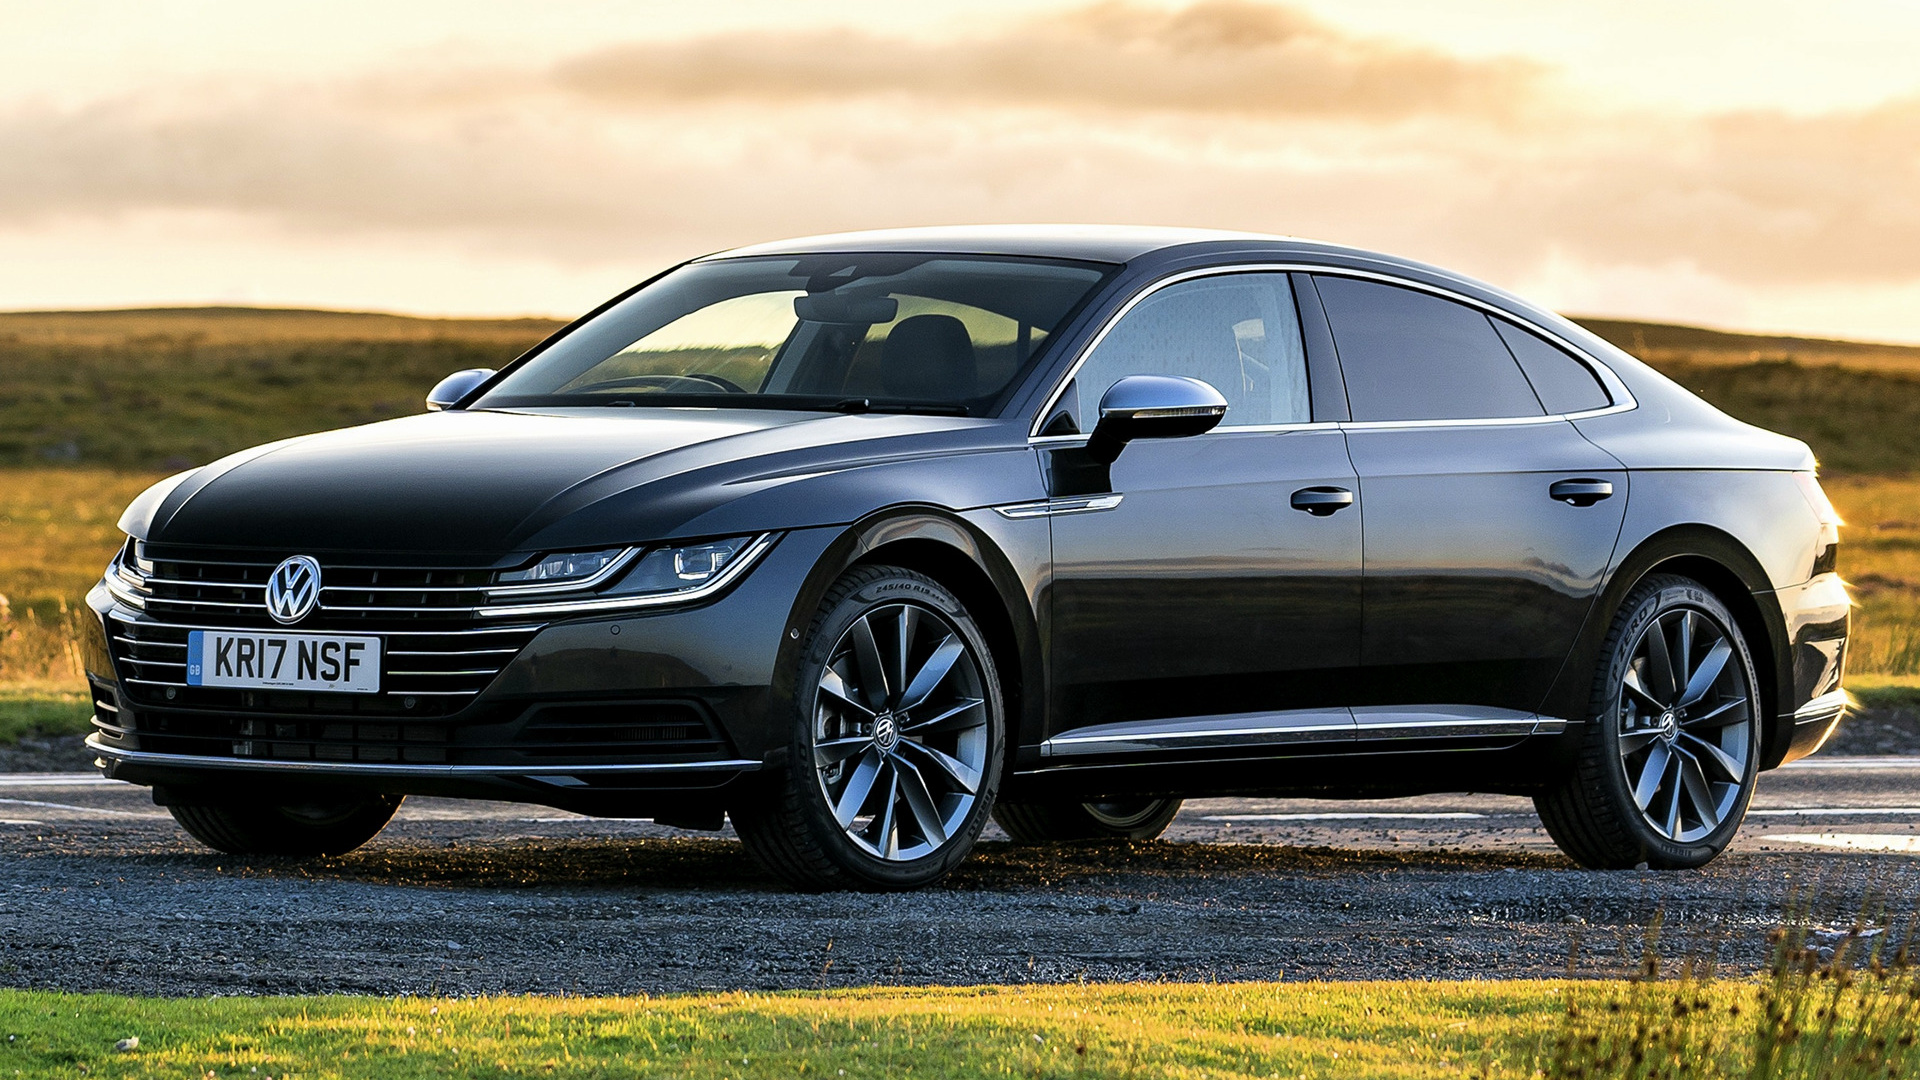 1920x1080 - Volkswagen Arteon Wallpapers 19